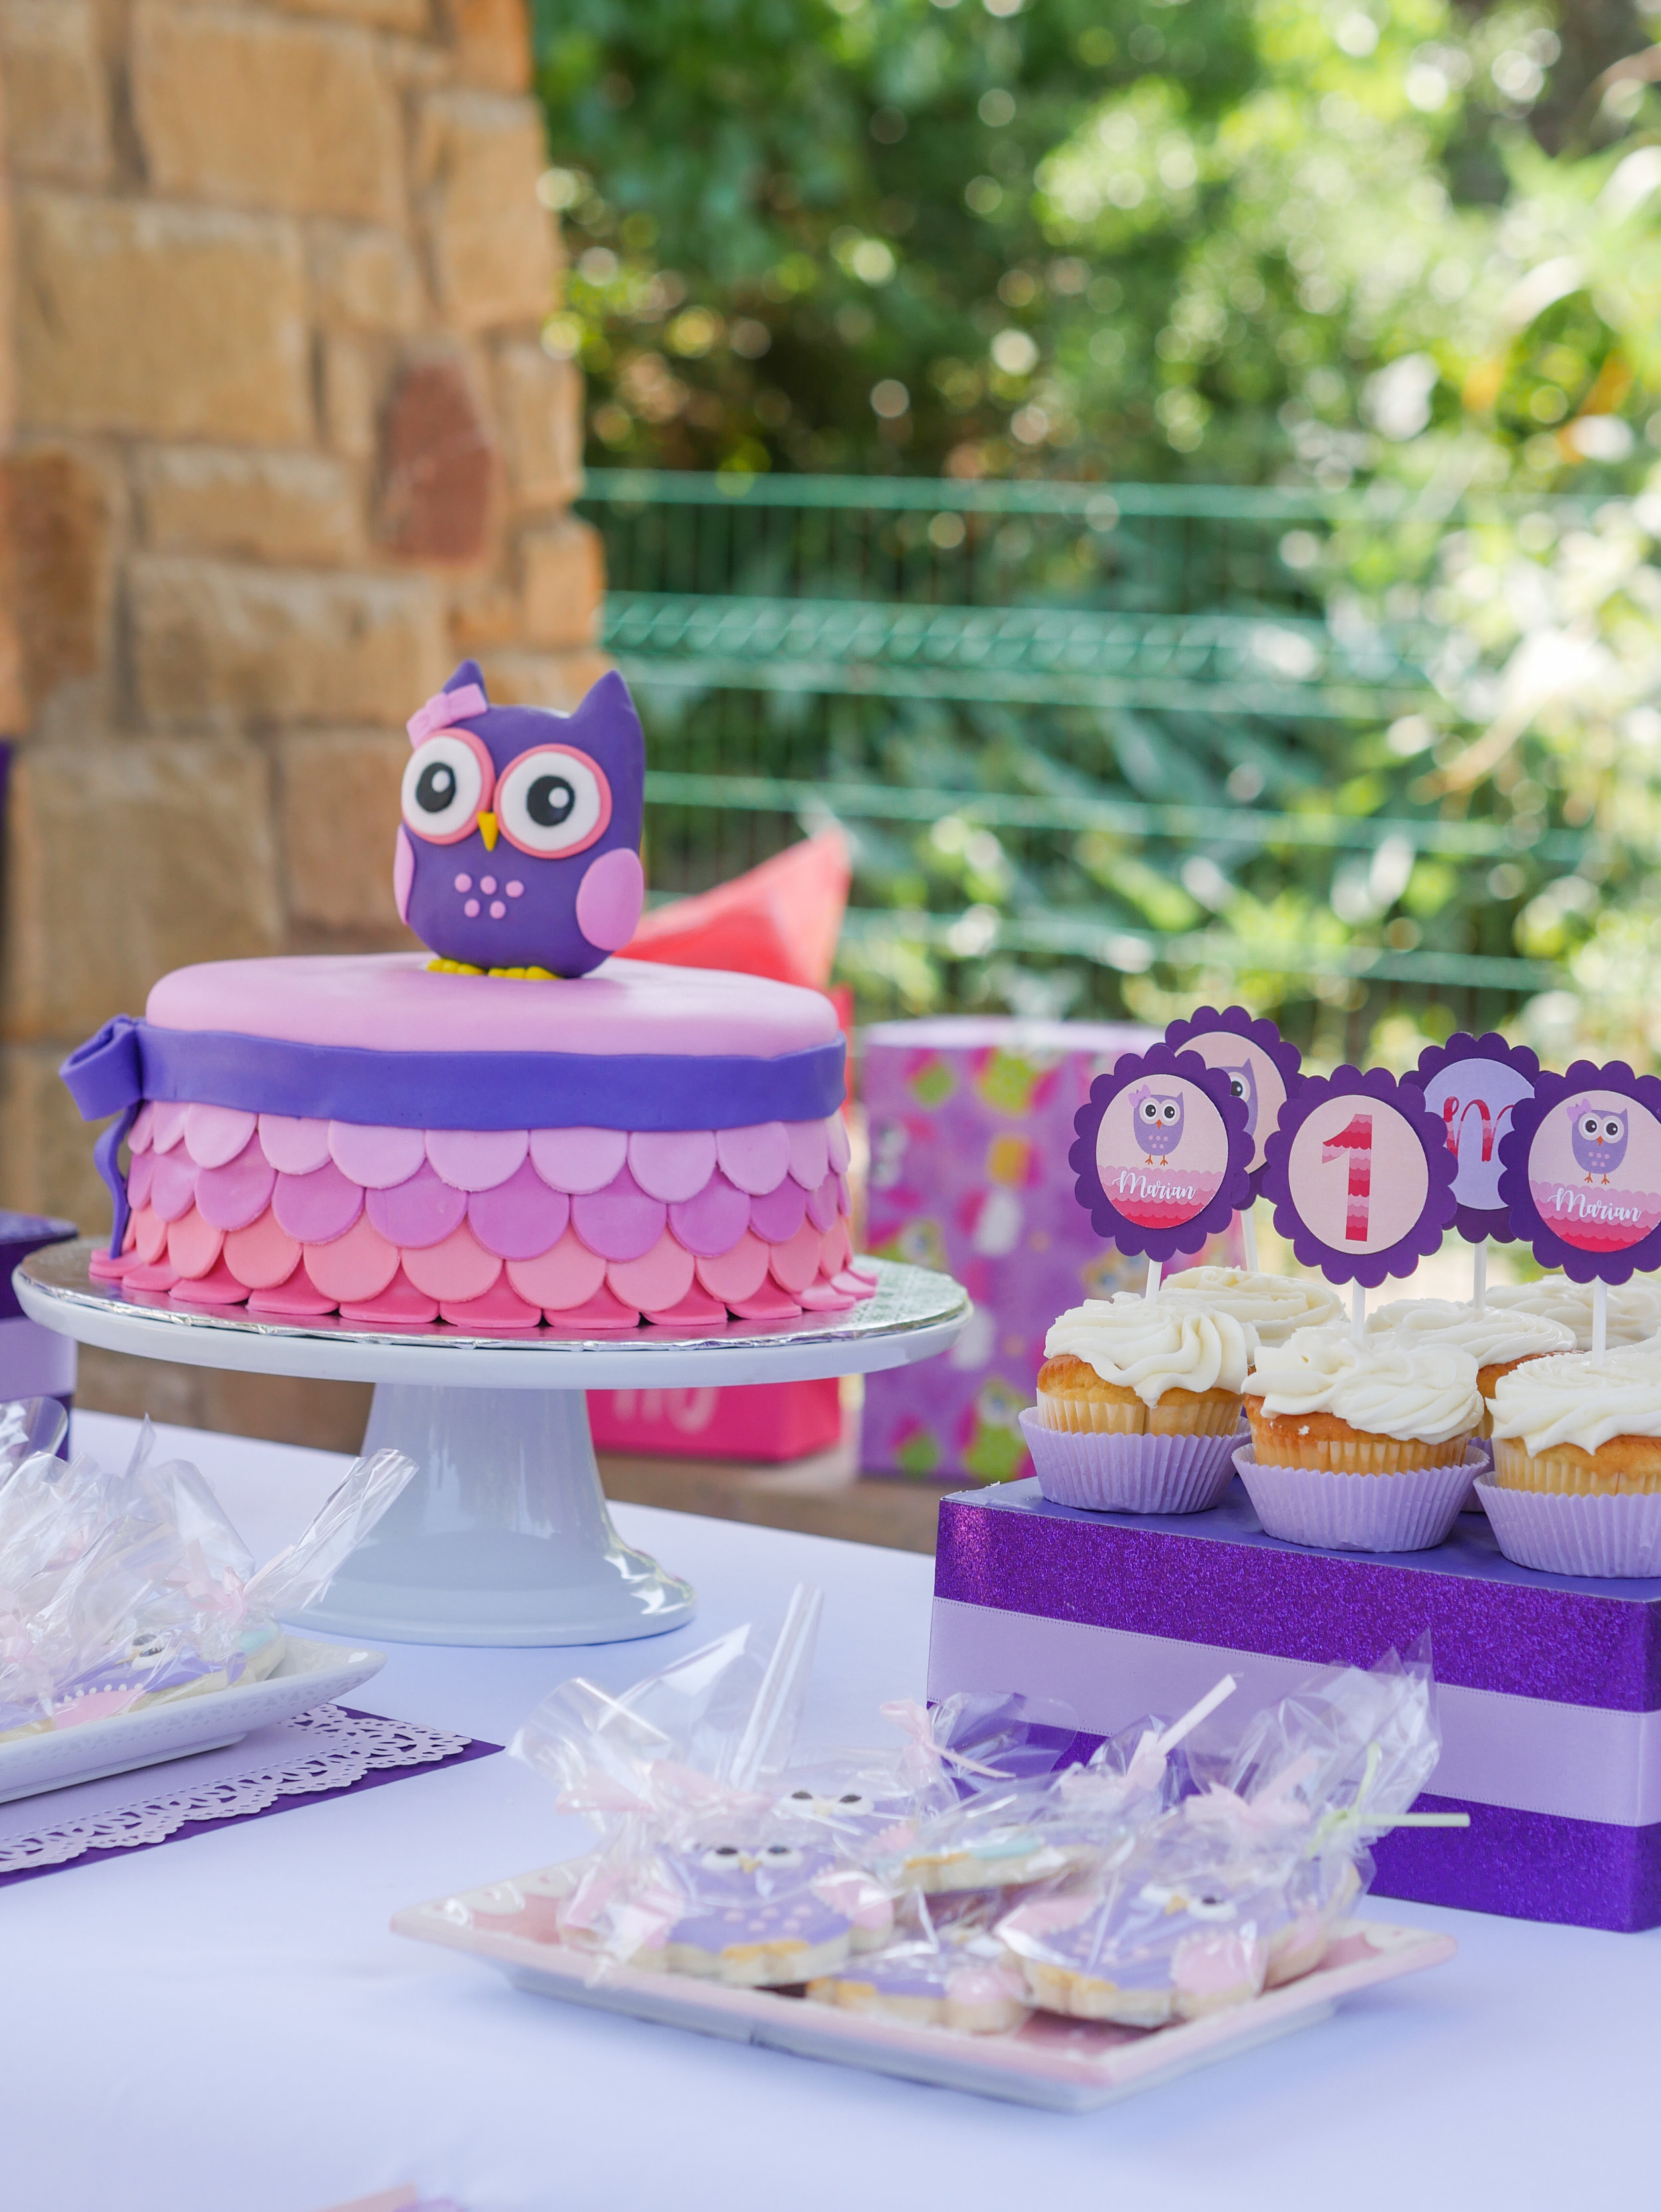 Cute Pink and Purple desserts table at an owl first birthday party. Full details on this look whoo's one birthday party can be found on www.minteventdesign.com - by party stylist Mint Event Design in Austin, Texas. #birthdayparty #partyideas #partyinspiration #owl #firstbirthday #owlcake #birthdaycake #partycupcakes